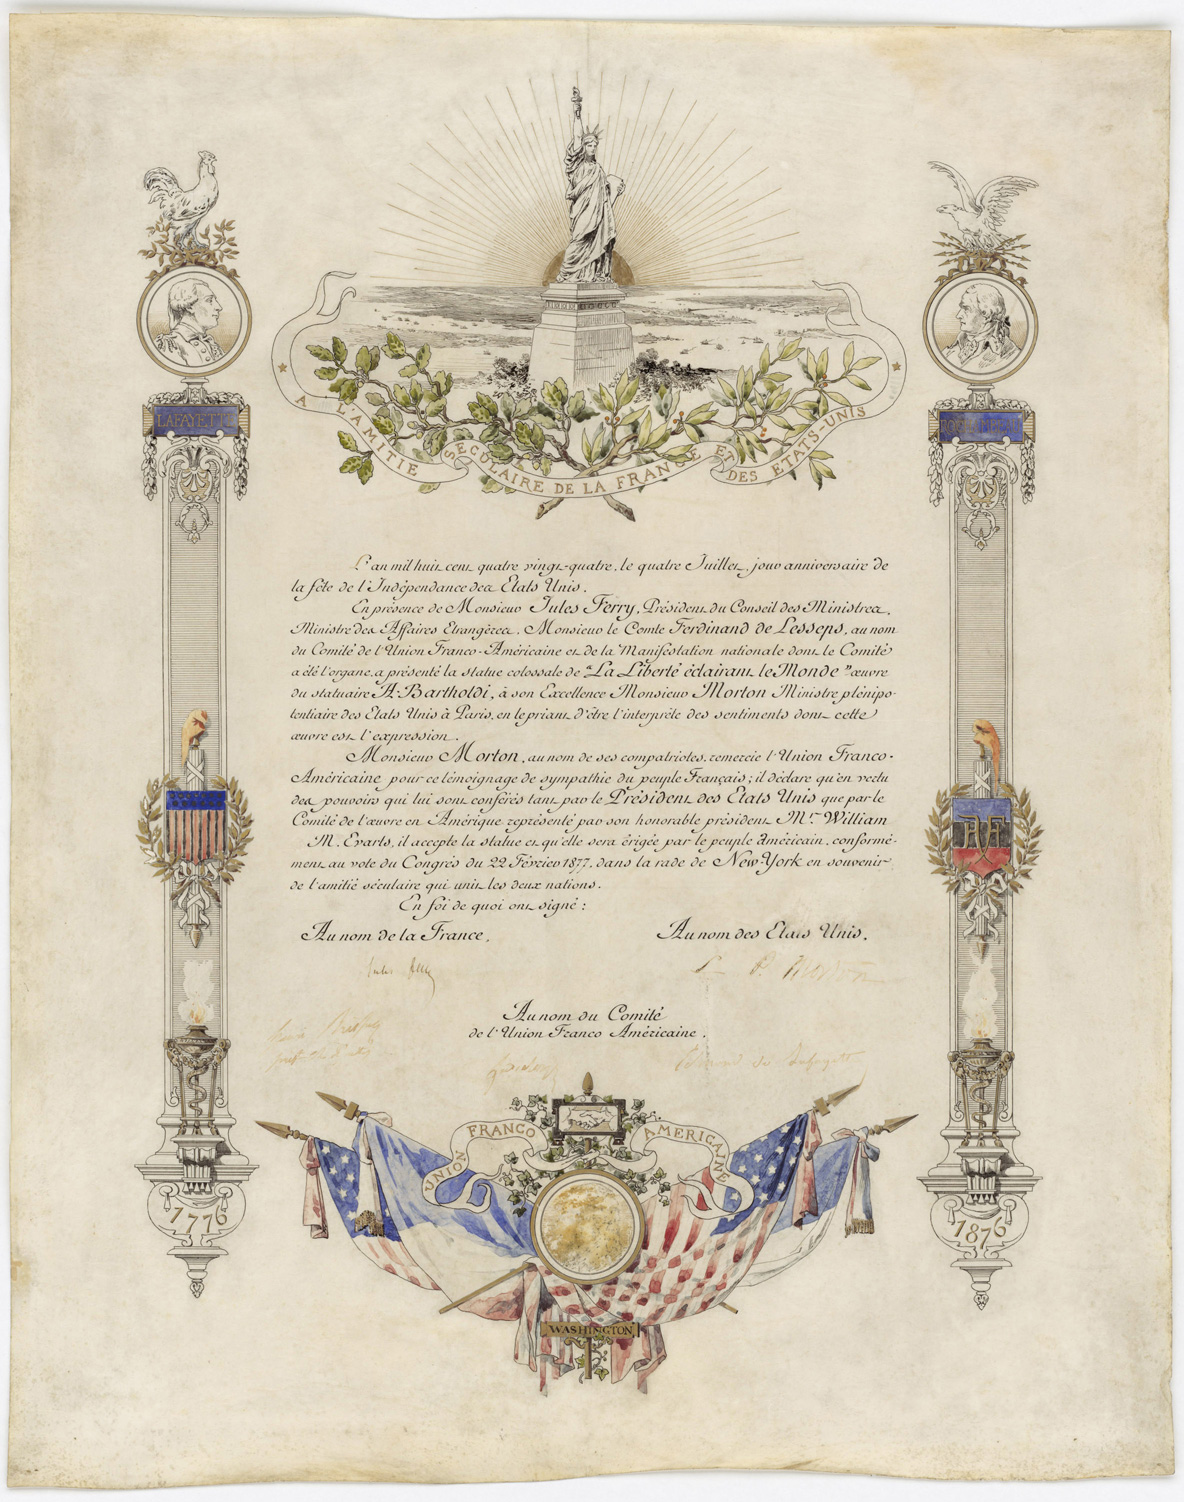 Statue of Liberty Deed of Gift